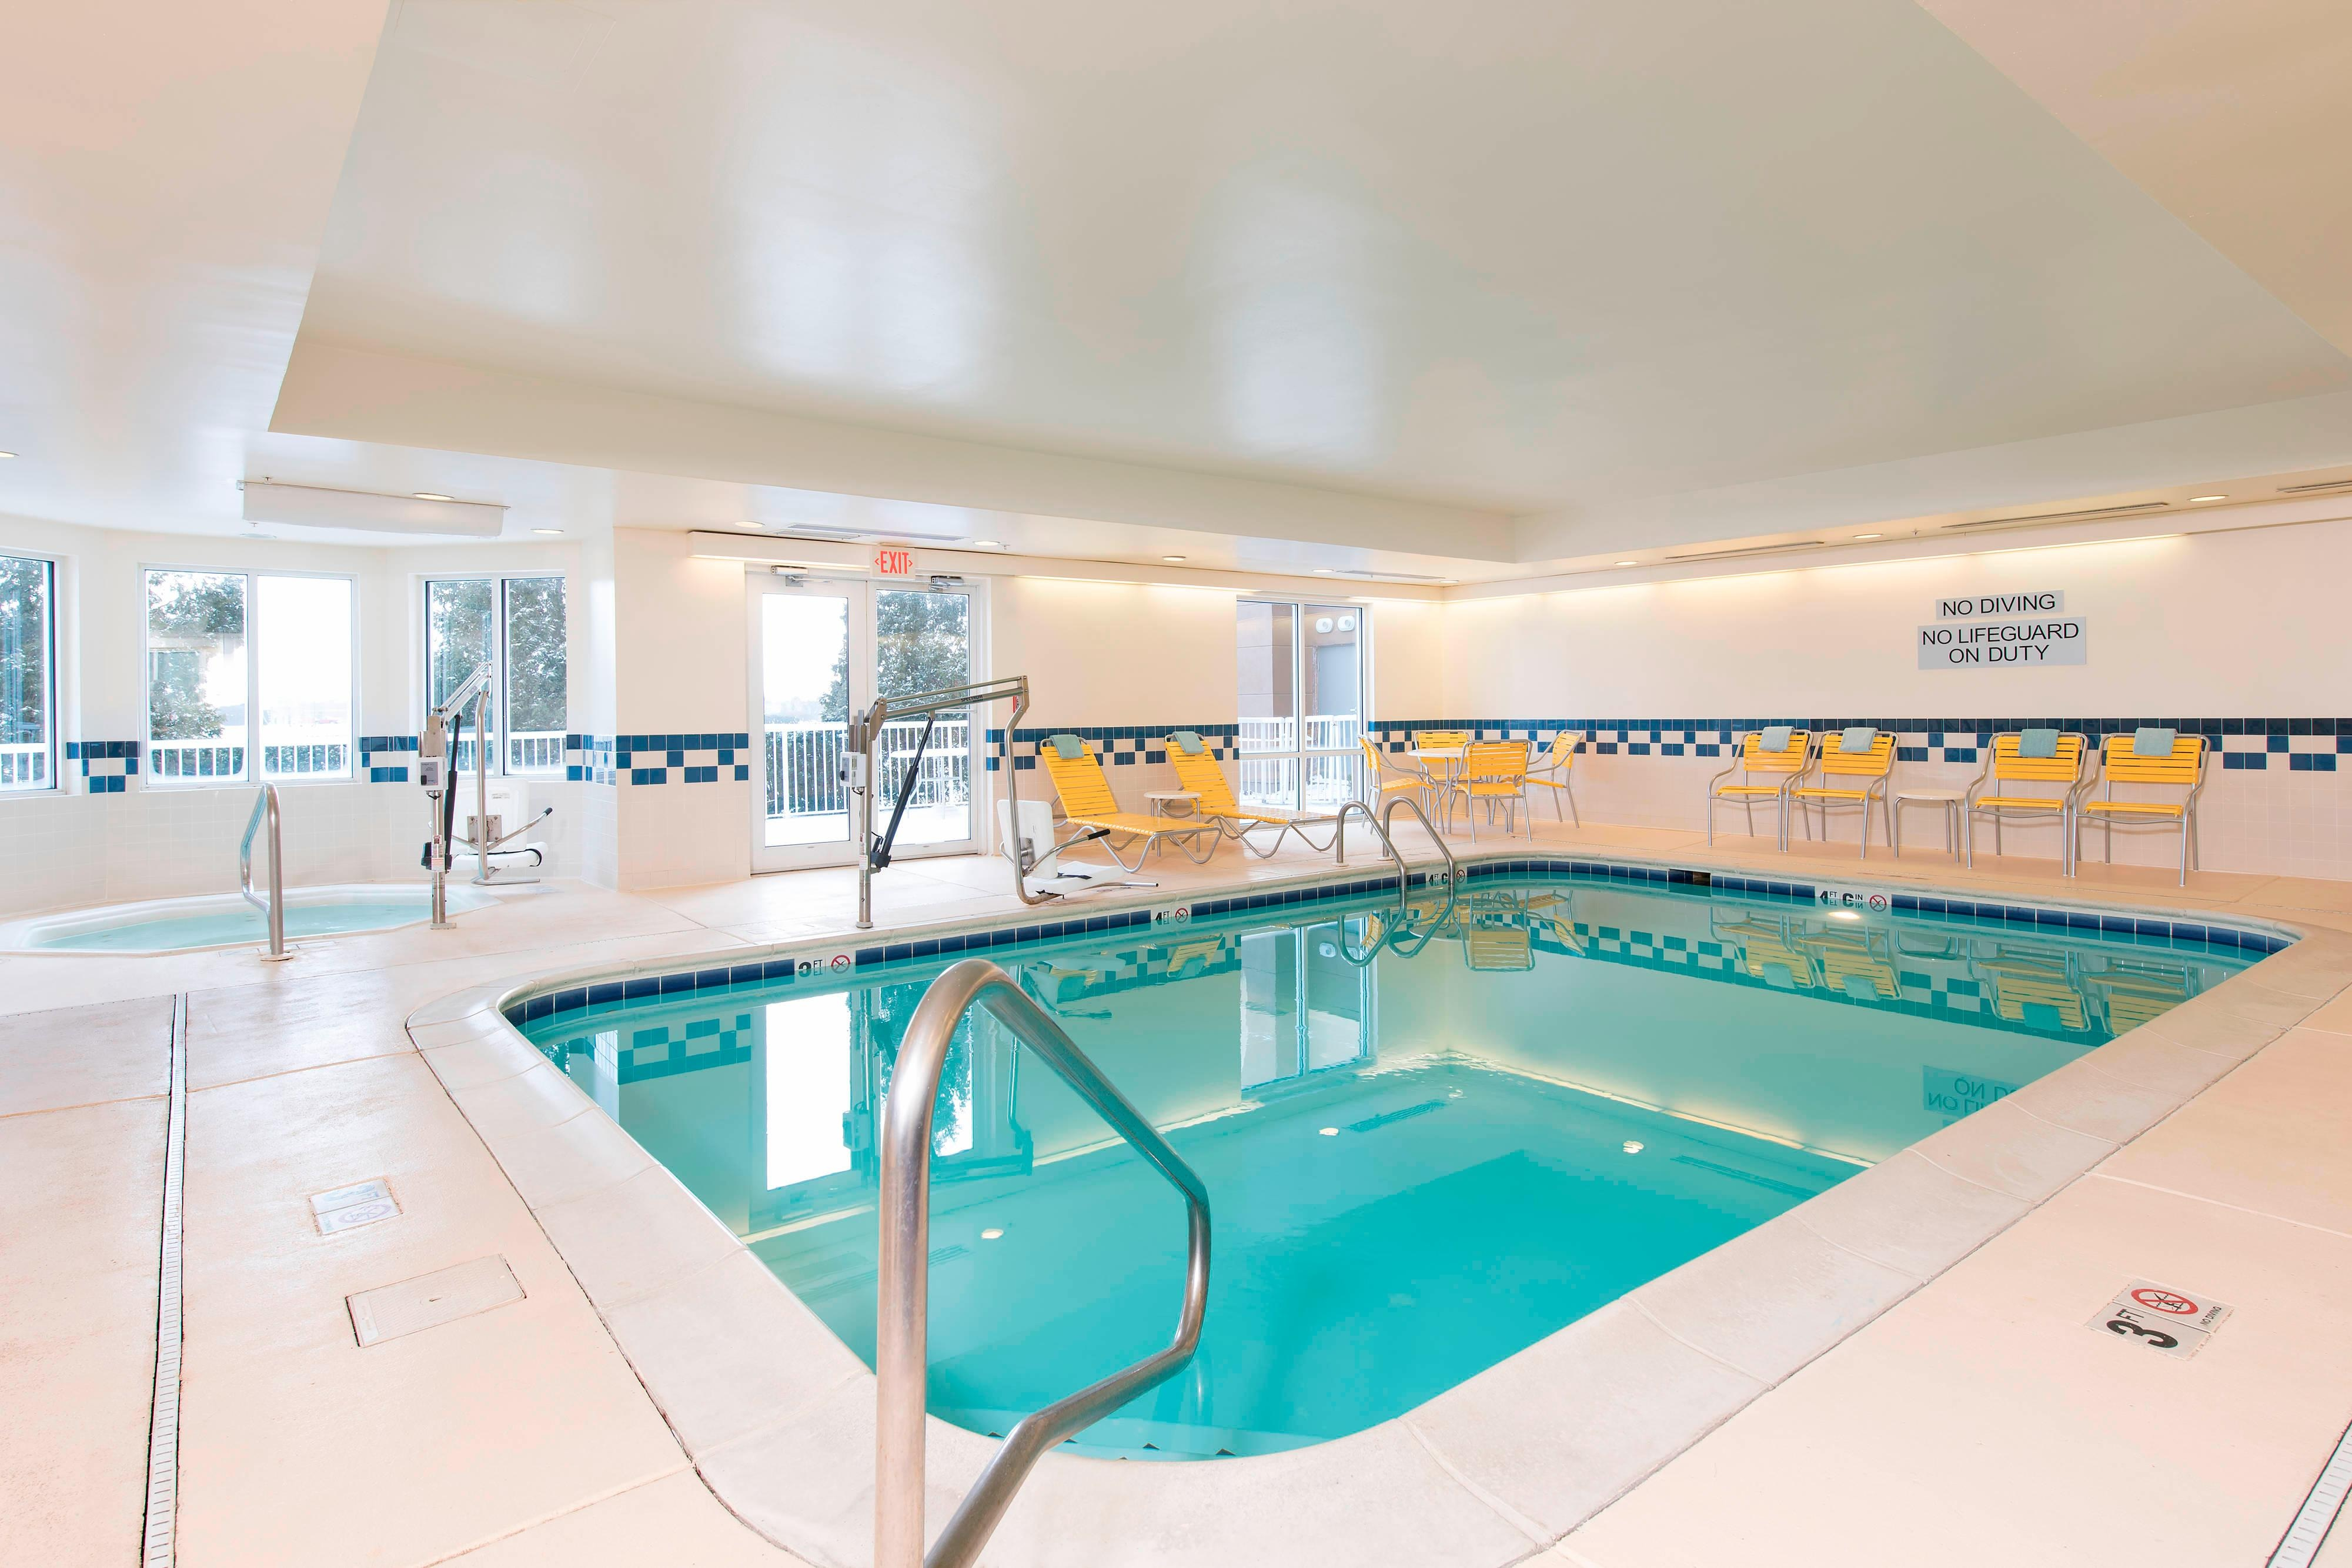 st. charles indoor pool